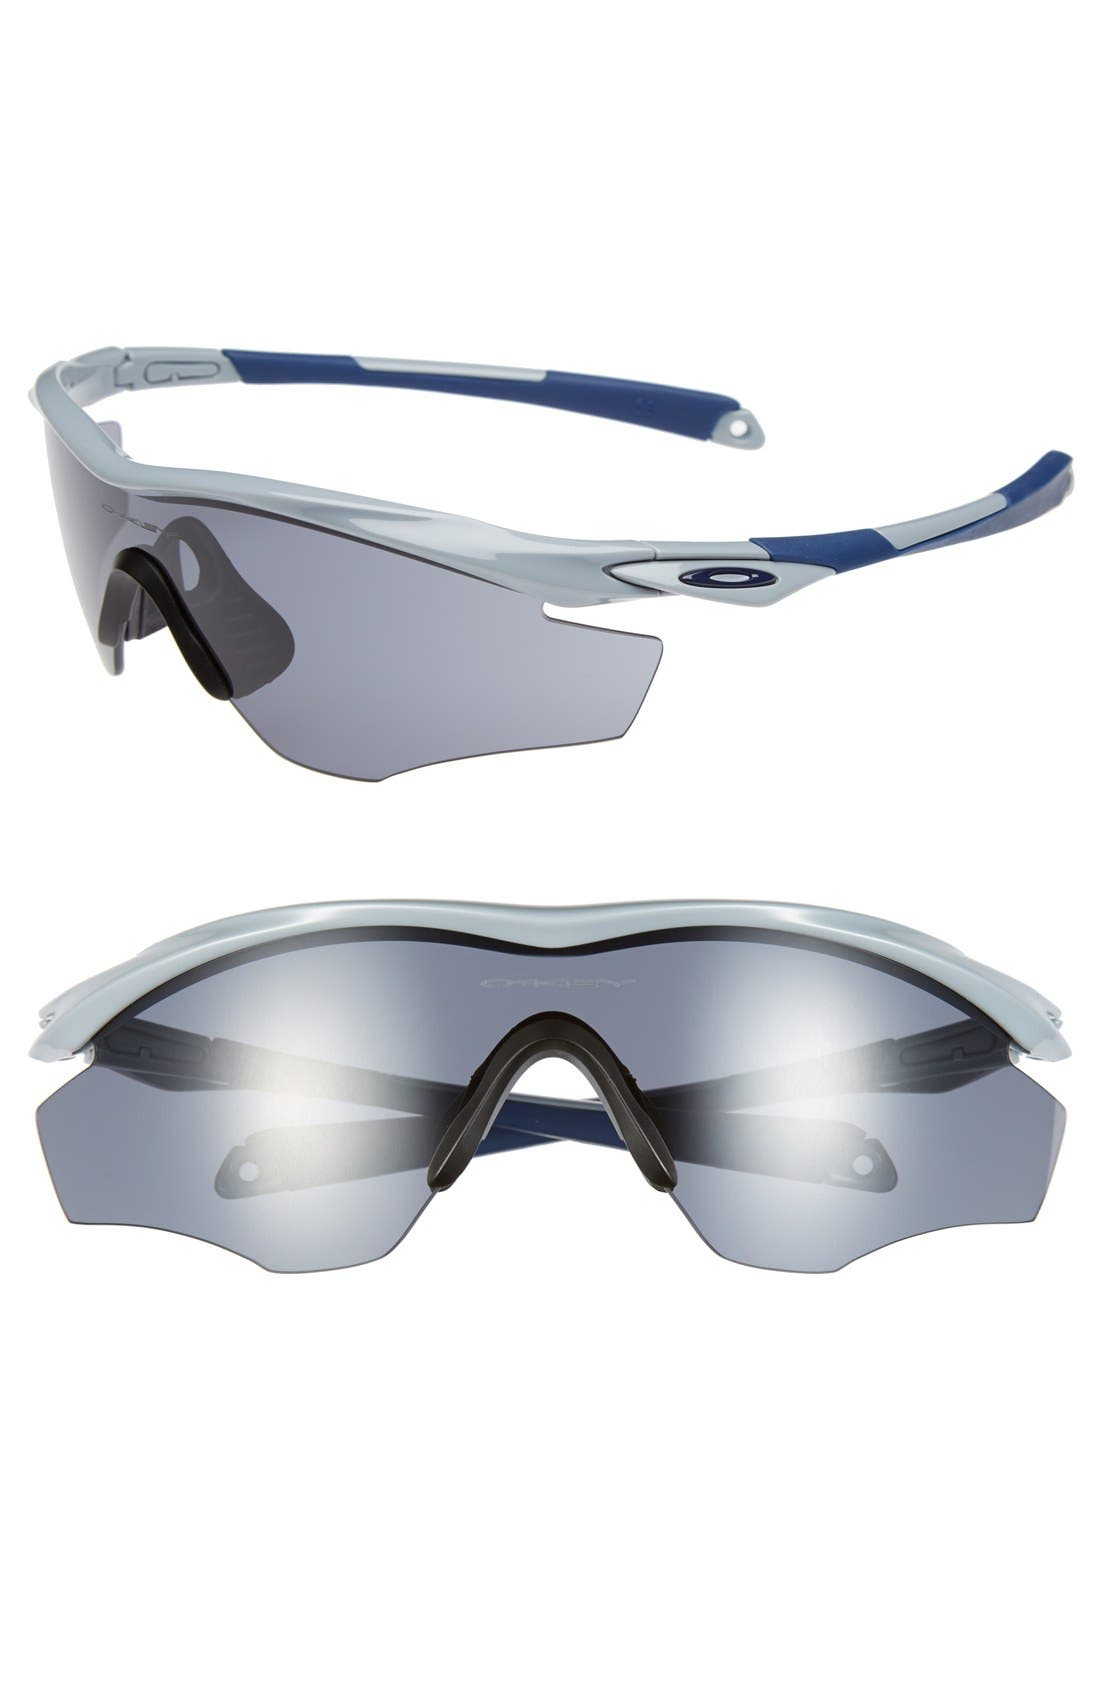 Main Image - Oakley 'M2 Frame' 175mm Shield Sunglasses